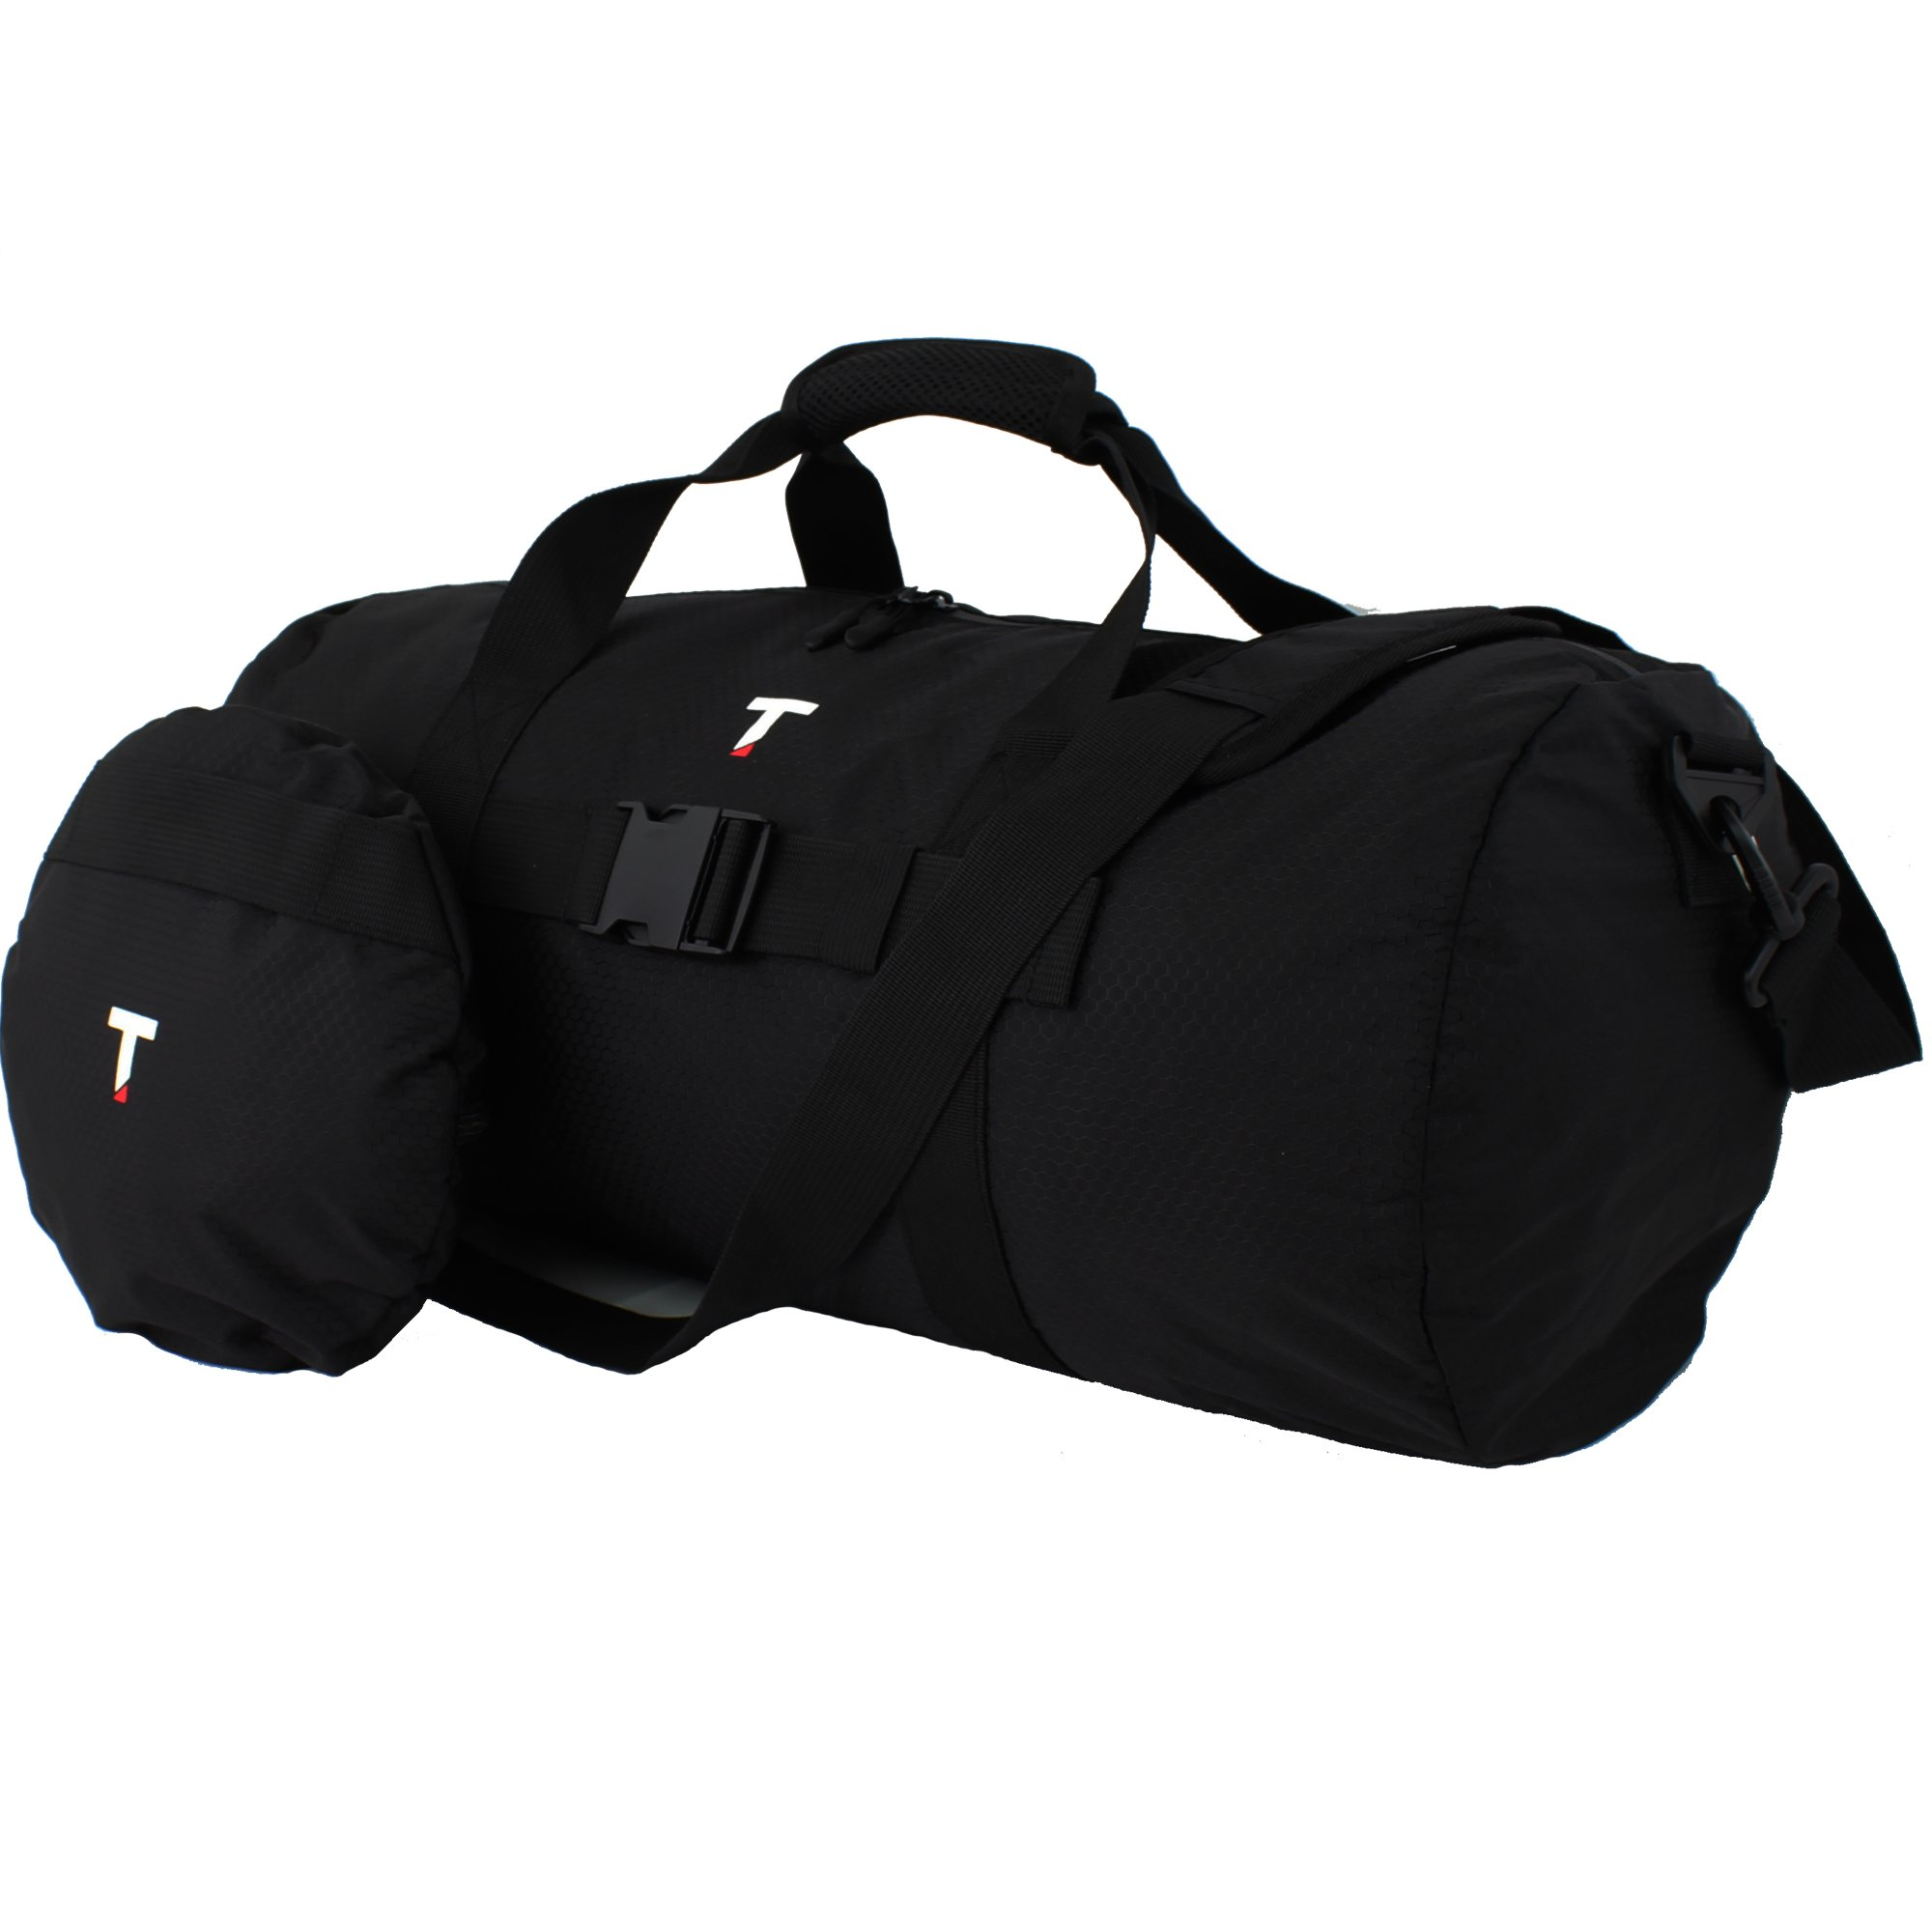 Taskin Disq - Foldable Small Travel Duffel (30L), Water & Odor Resistant & All Metal Trims